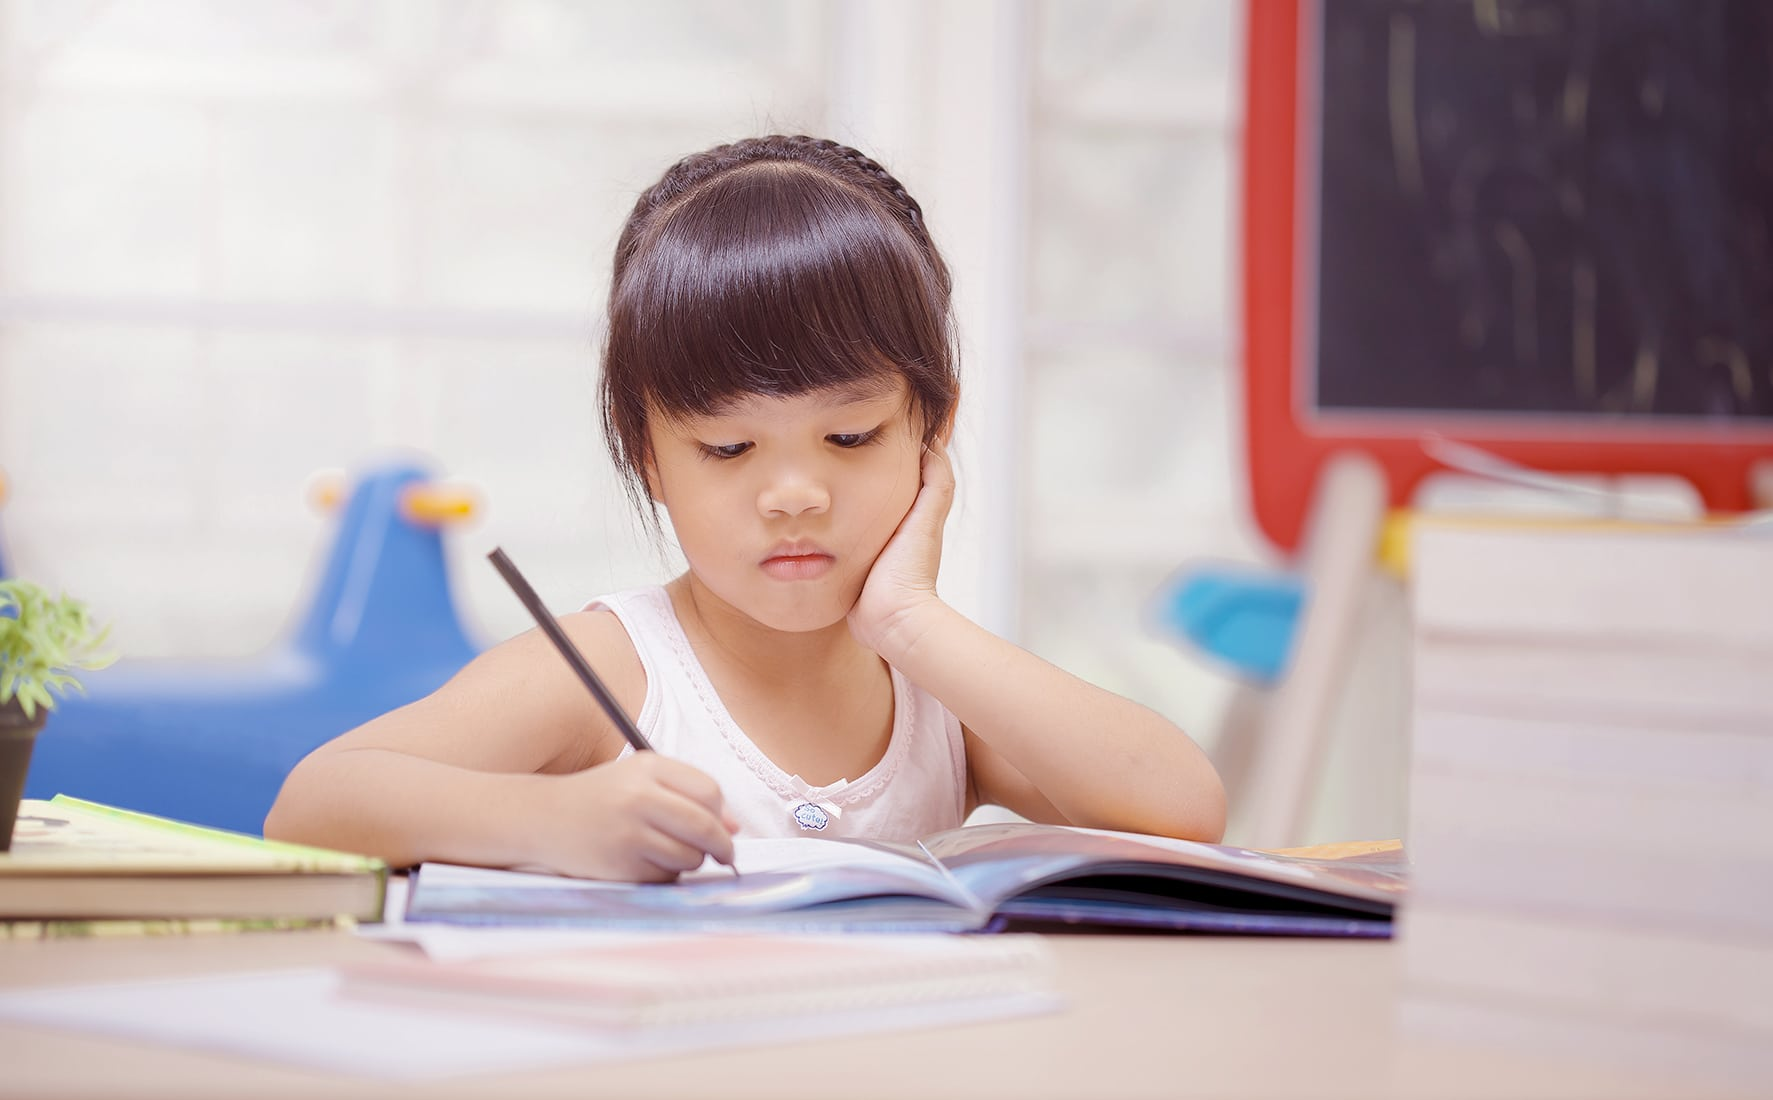 We help learners conquer their fear of the Chinese language through an emphasis on oral and written communication skills, Learning Circle method and Blended Learning